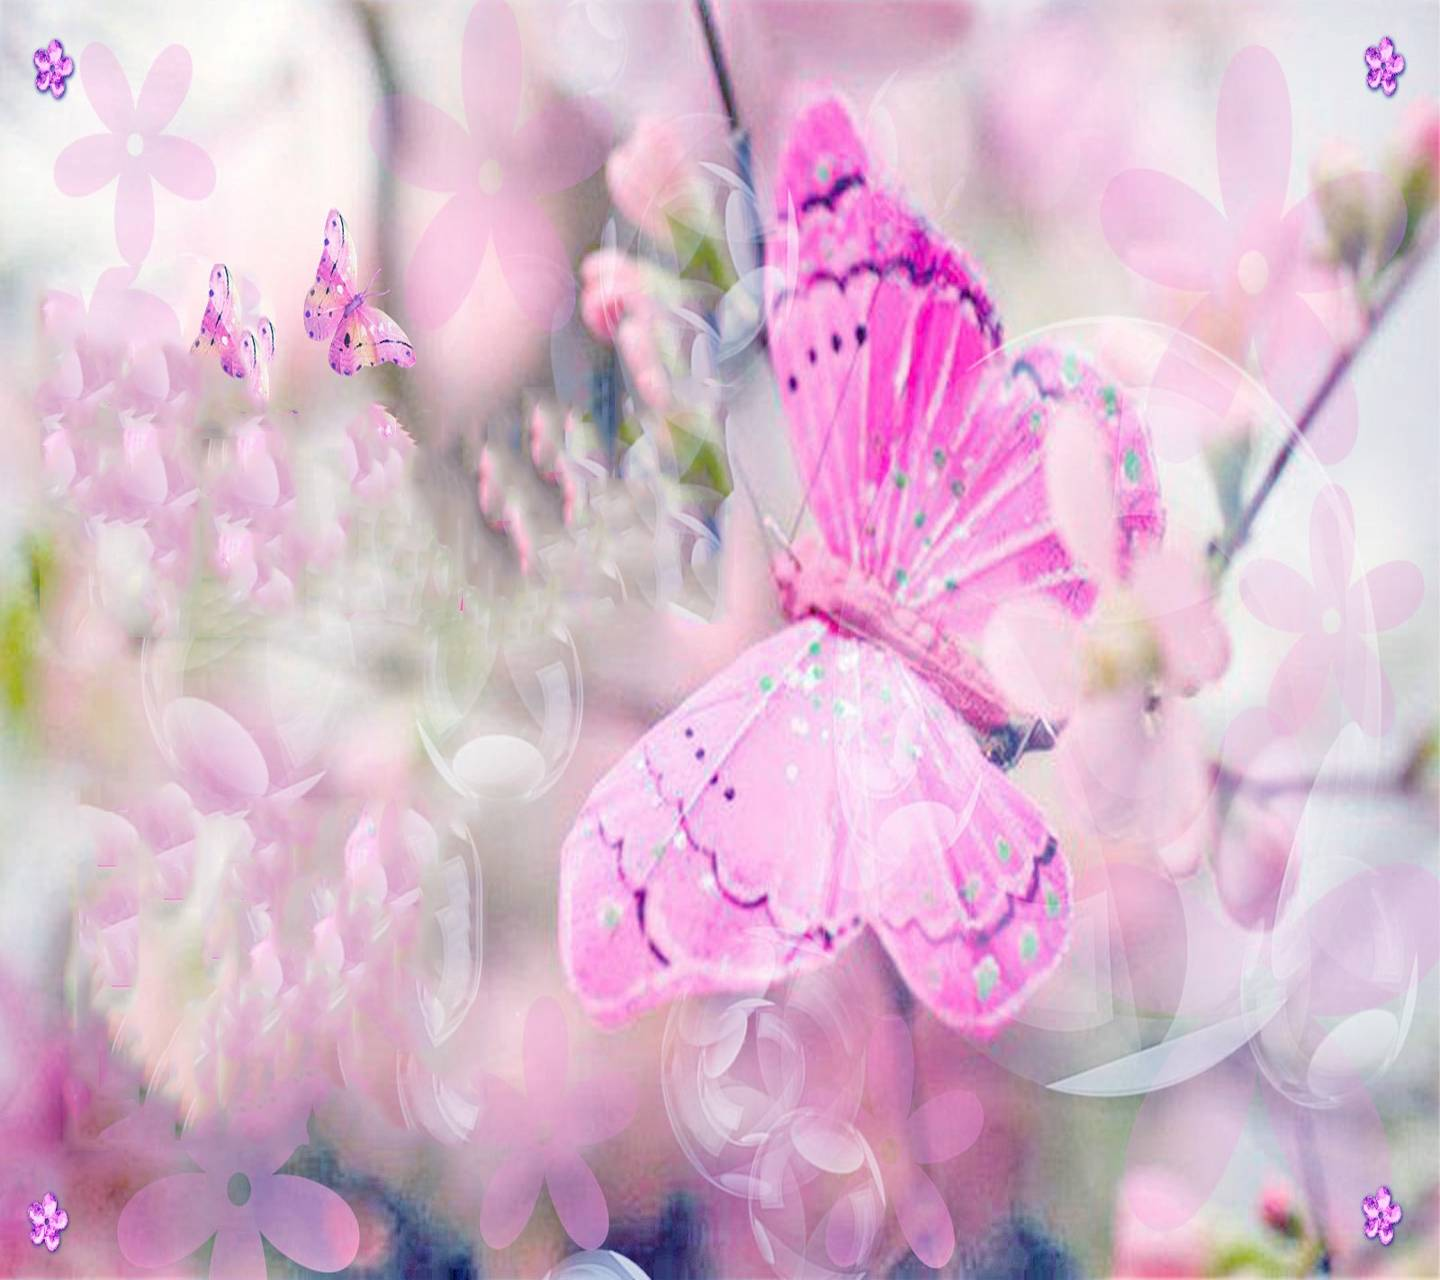 Pink Butterfly Wallpaper By Savanna Da Free On Zedge